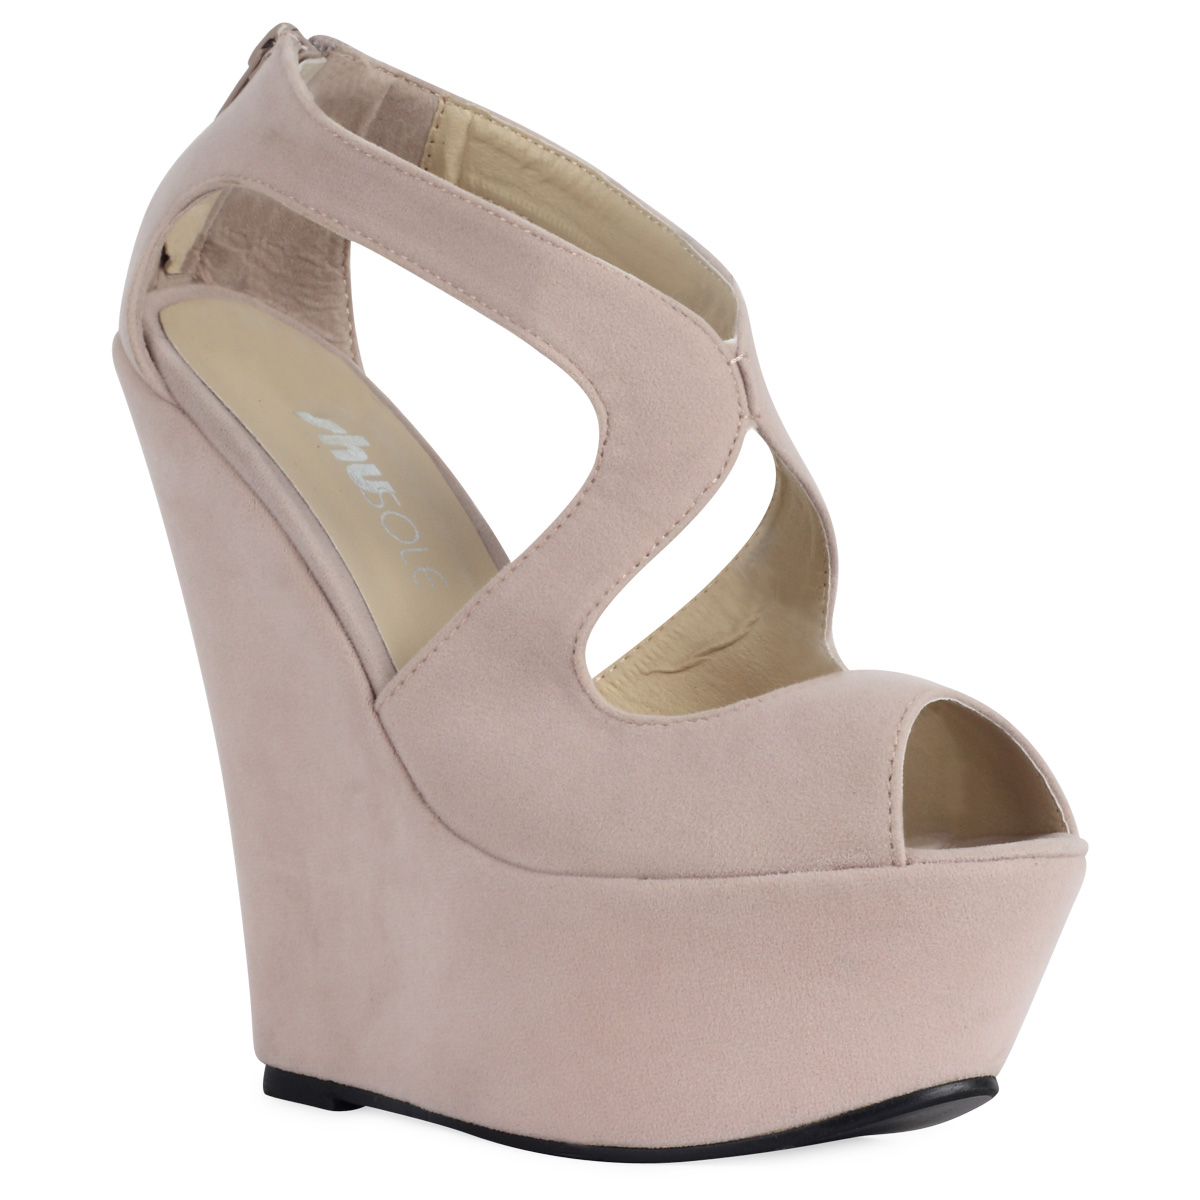 NEW WOMENS NUDE CUT OUT LADIES PLATFORM PEEP TOE HIGH WEDGE HEEL